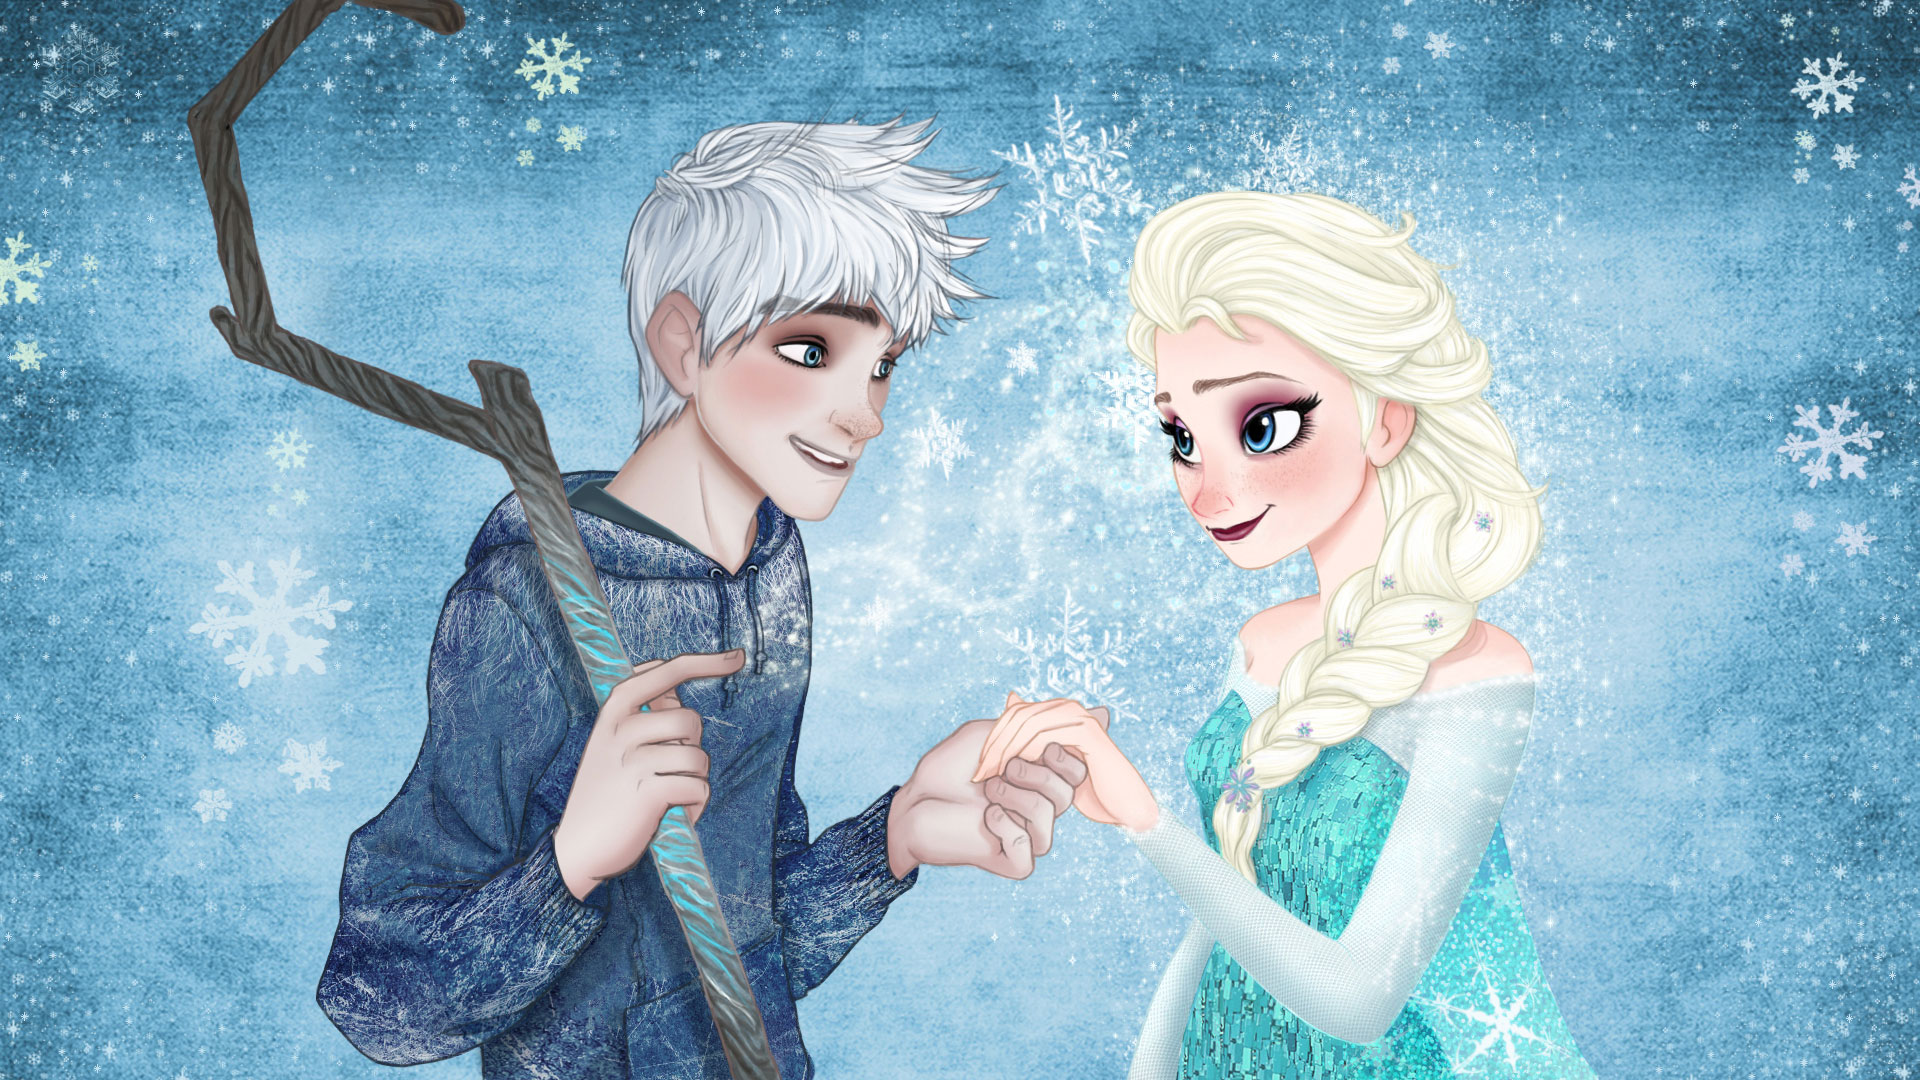 Jack Frost Art Cartoon